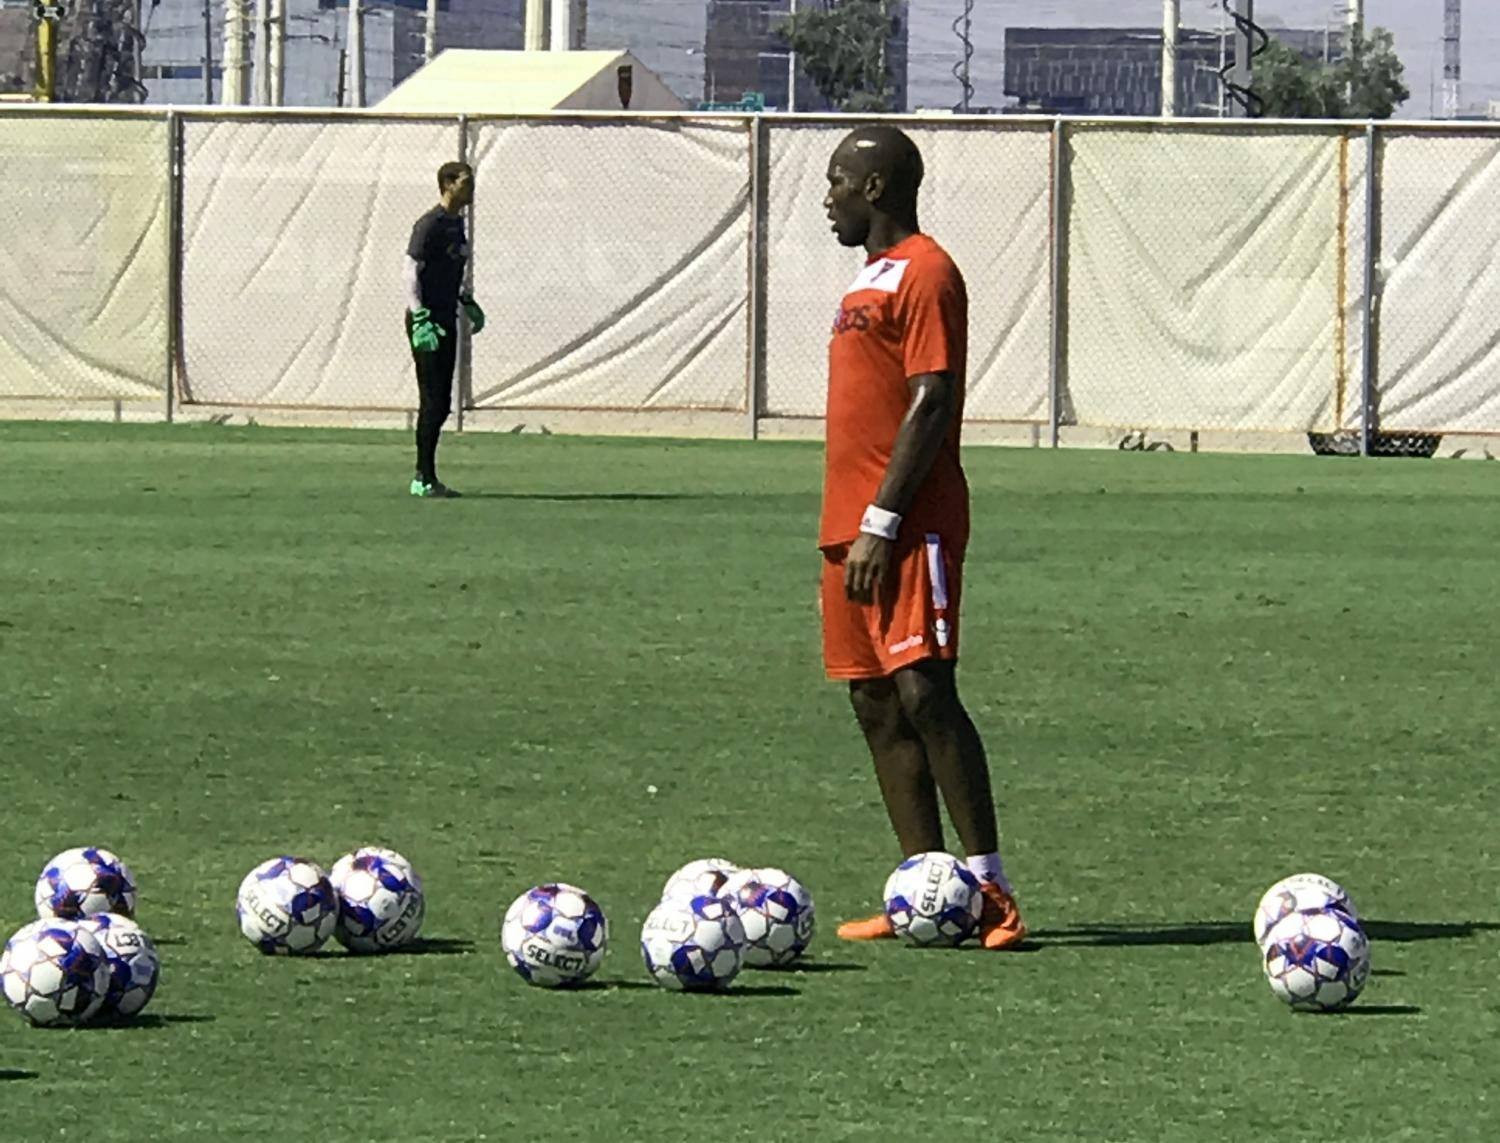 Phoenix Rising midfielder and co-owner Didier Drogba